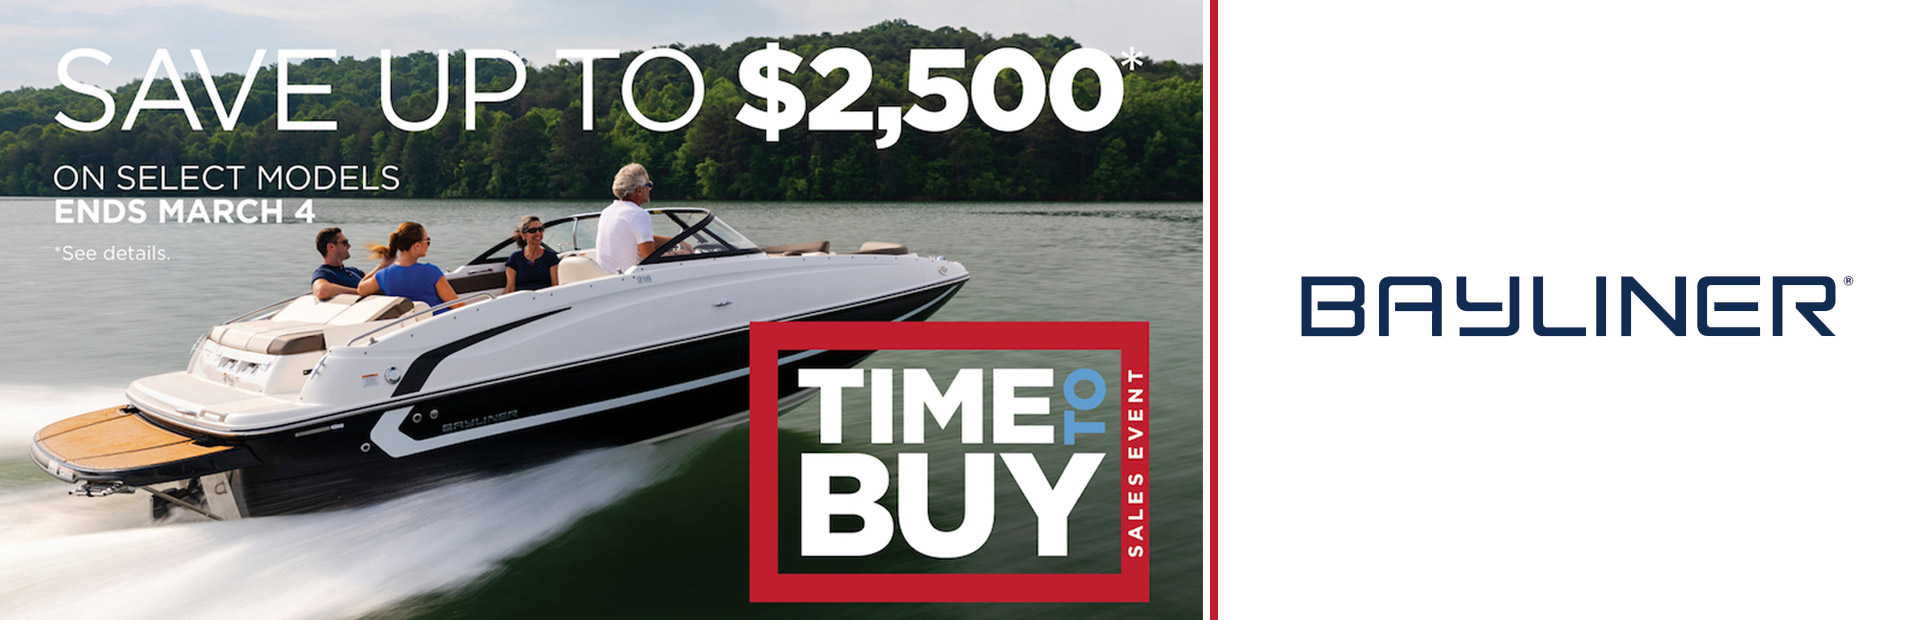 Bayliner: Time to Buy Sales Event